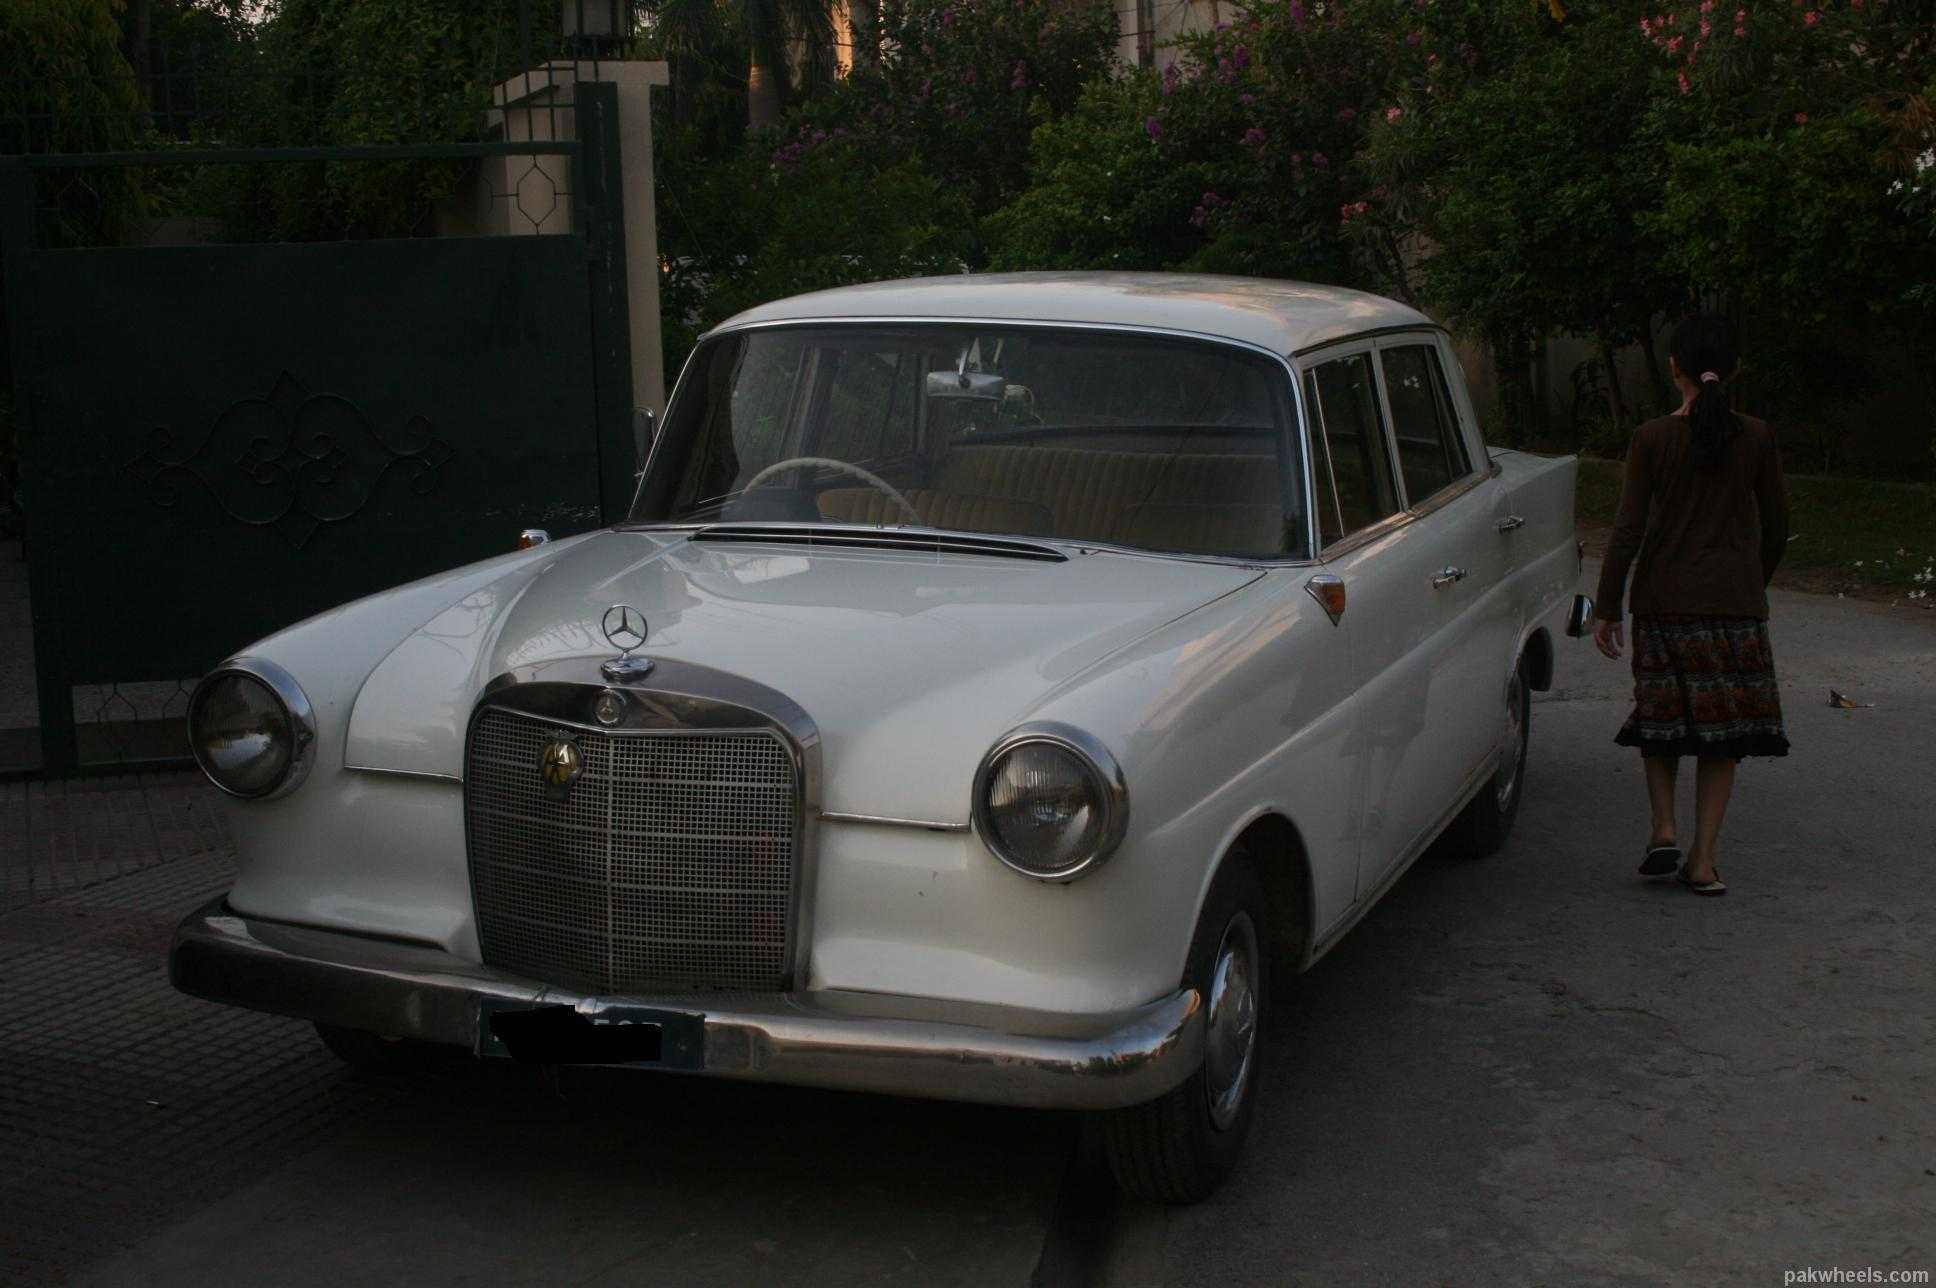 Mercedes benz s class 1960 of oomark member ride 10672 for 1960 mercedes benz